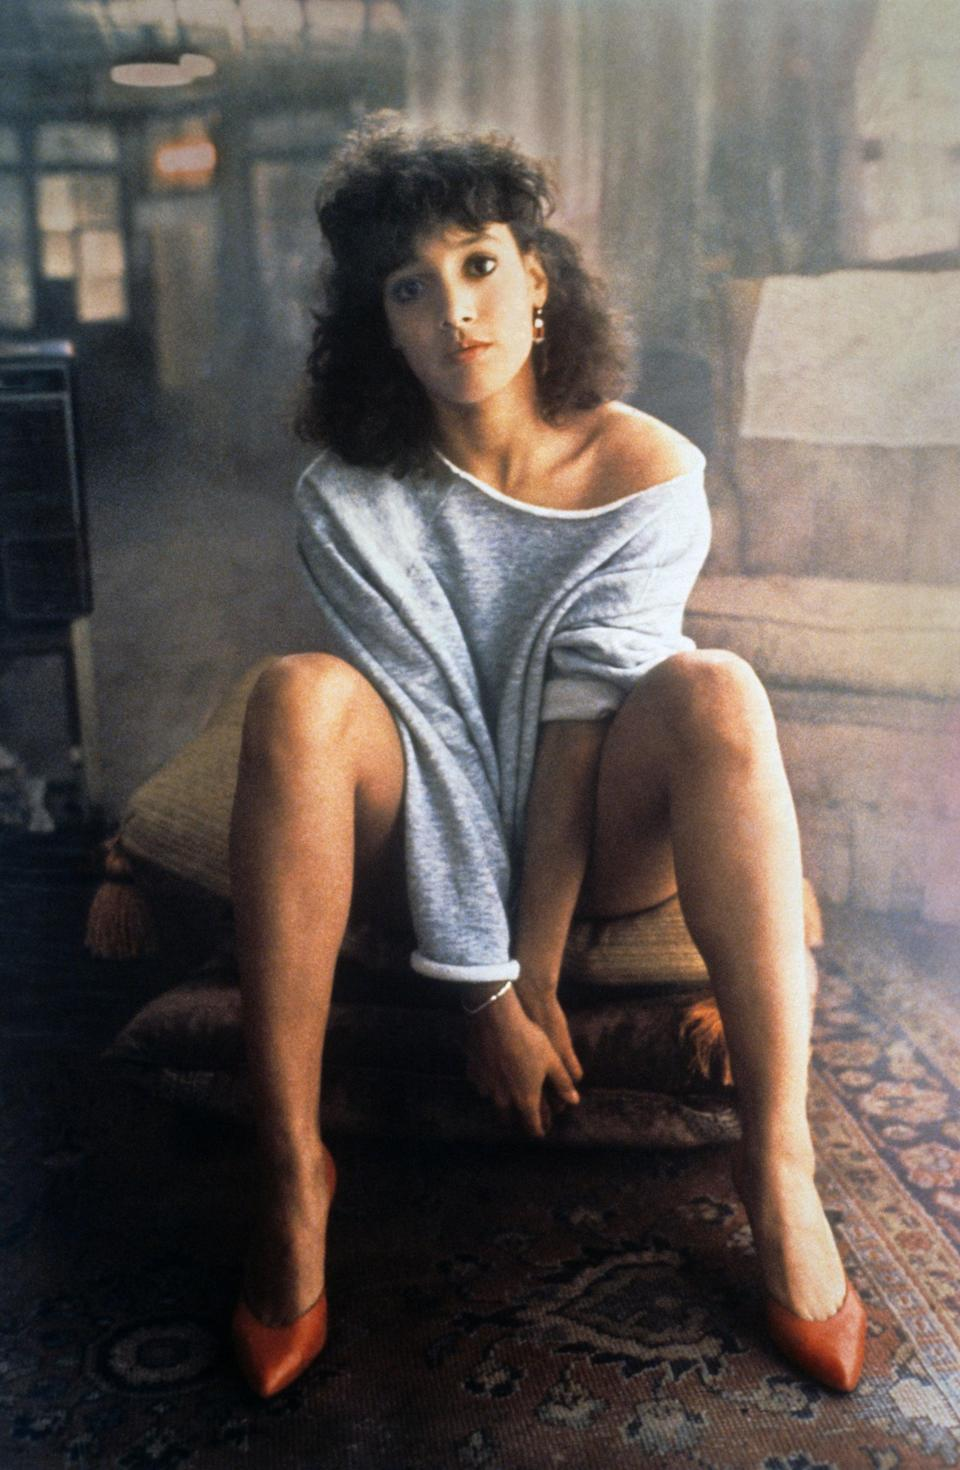 <p>Jennifer Beals got to wear what, to this day, still looks like the most comfortable sweatshirt ever - at least in my opinion. She wore this raglan cut sweatshirt in typical '80s style, off the shoulder with bright pumps.</p>